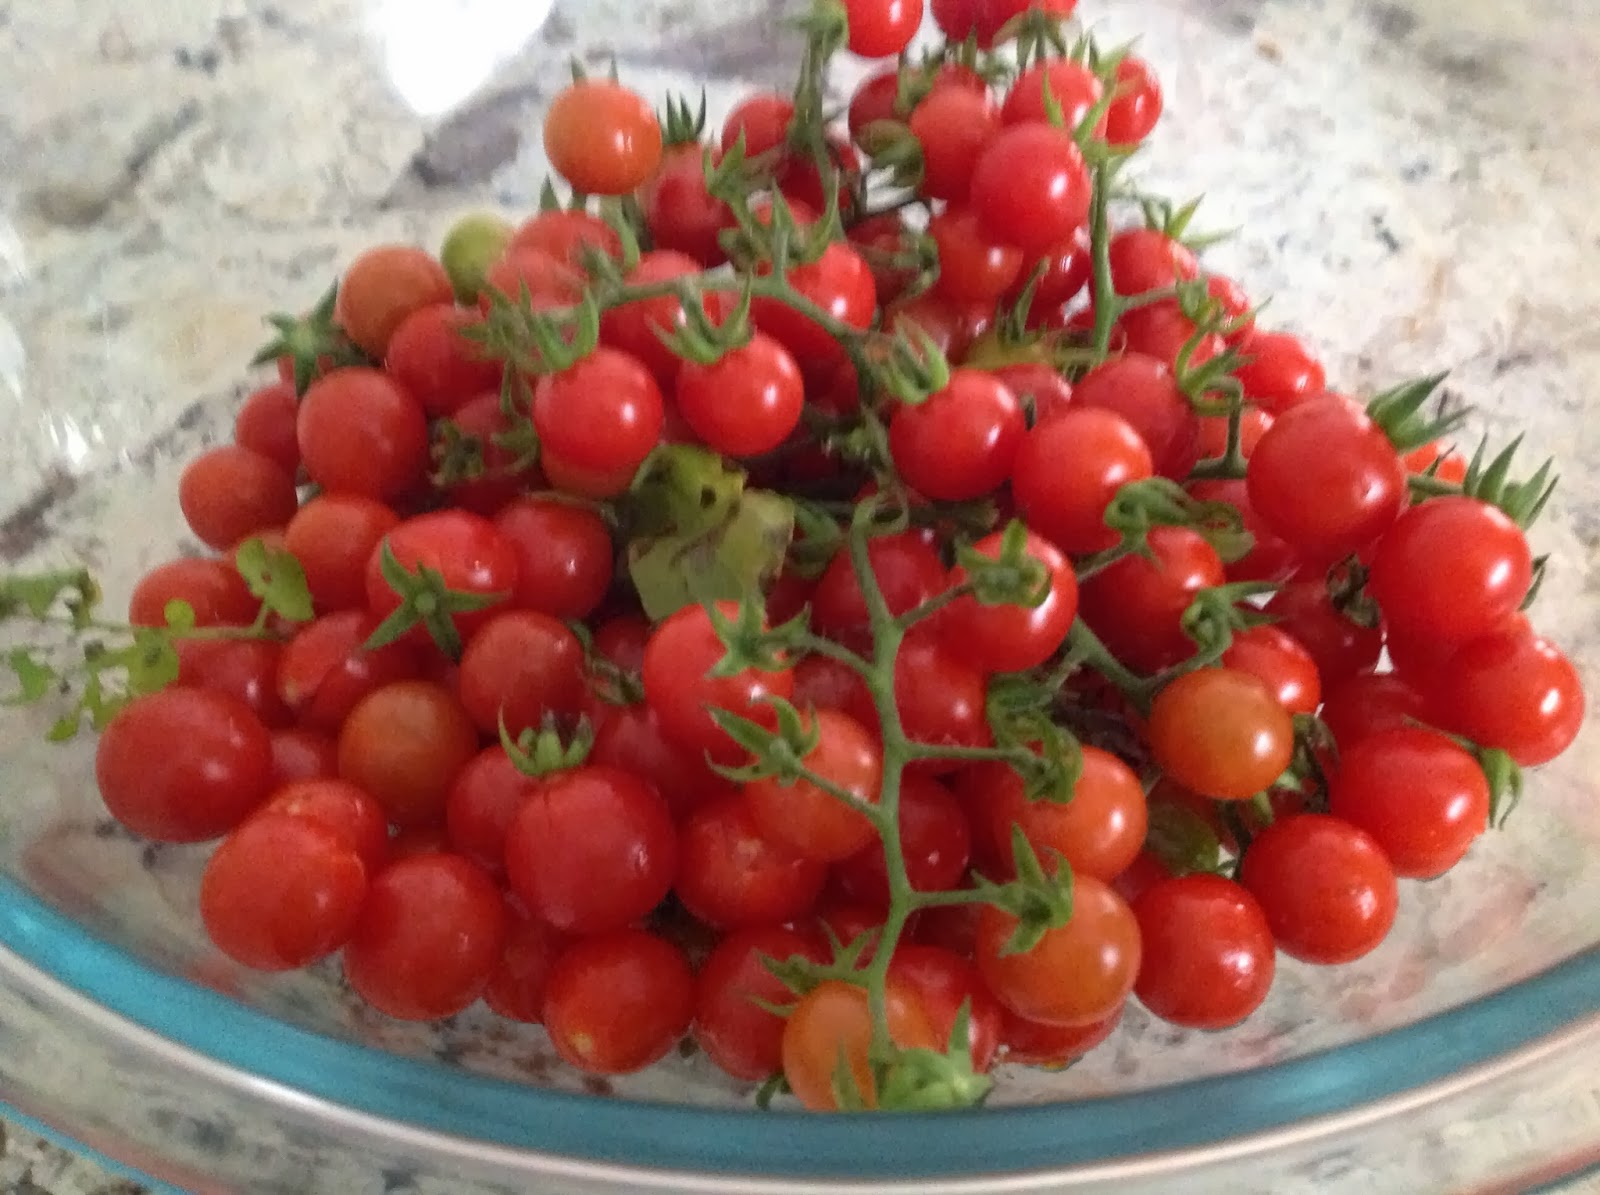 freshly picked bowl of cherry tomatoes with stems